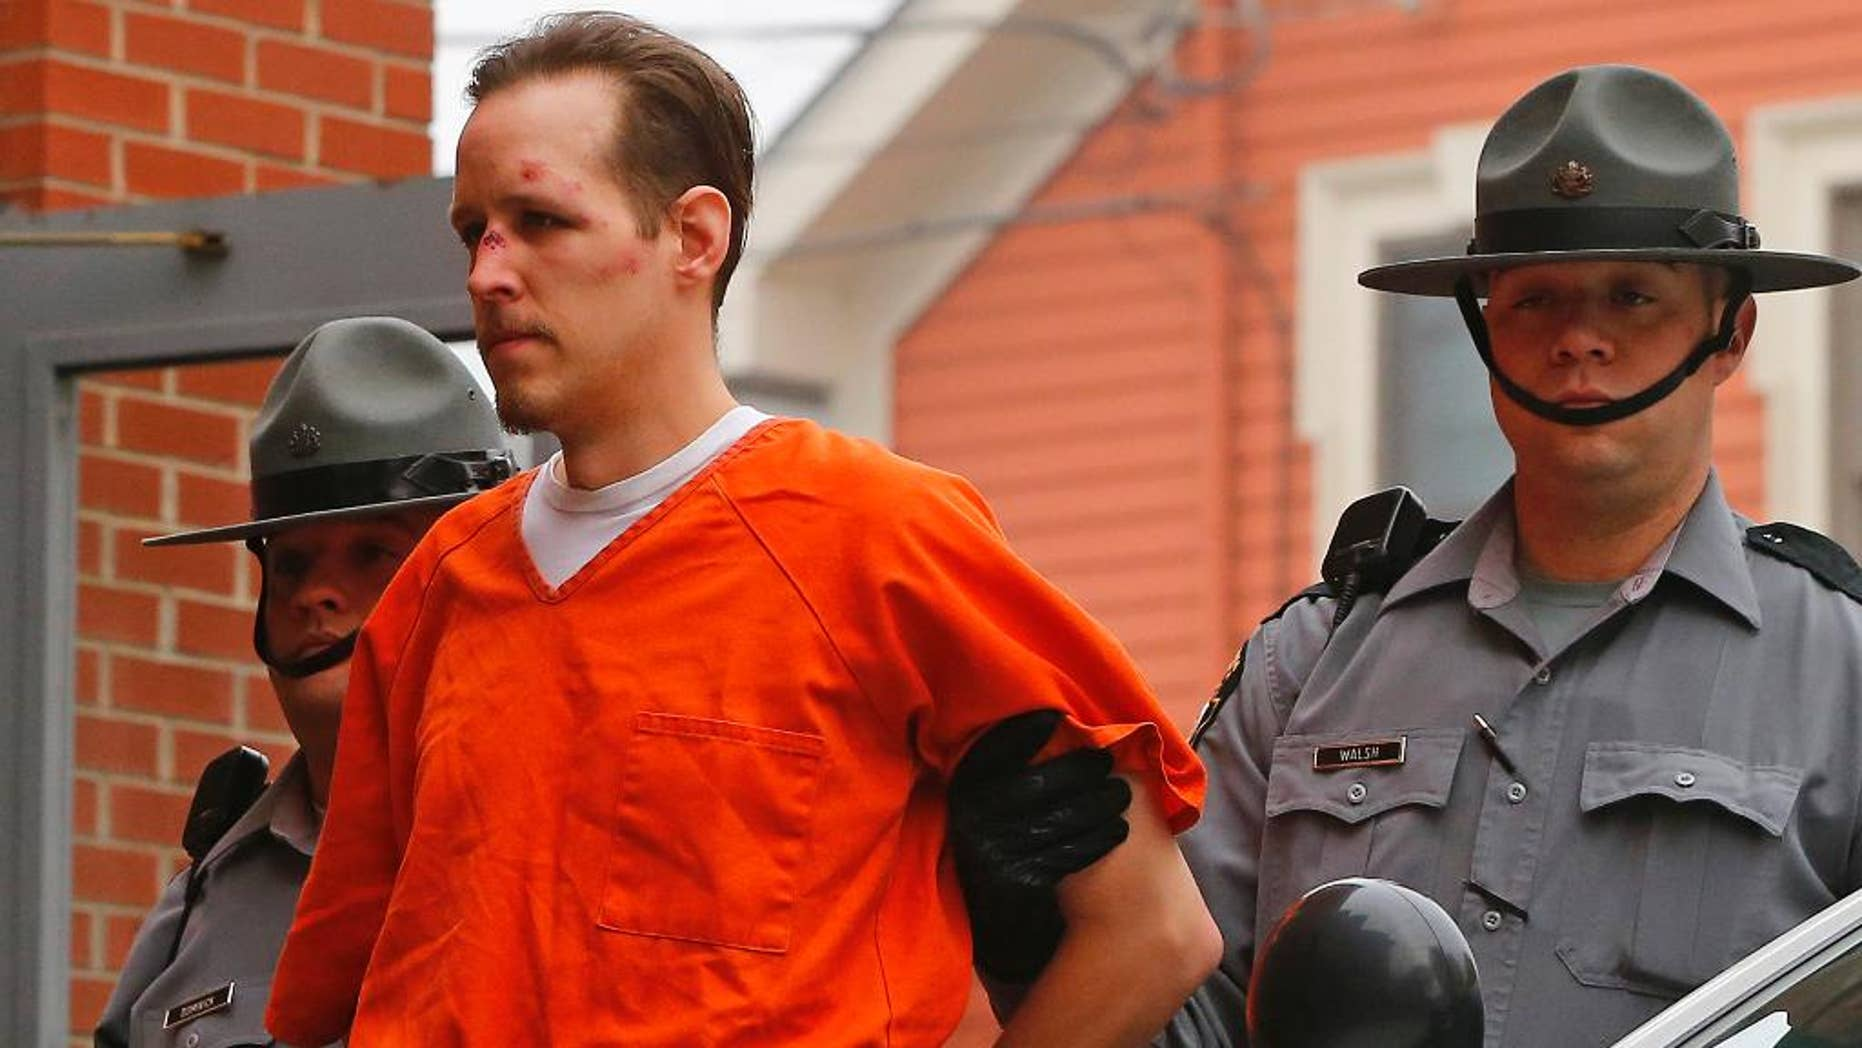 FILE - In this Oct. 31, 2014 file photo Eric Frein is escorted by police into the Pike County Courthouse for his arraignment in Milford, Pa. Frein a survivalist who eluded capture for 48 days after allegedly killing a trooper in a 2014 ambush says police were about a football field away from him at one point during the manhunt. Authorities say they found Eric Frein's journal at the airplane hangar where he was hiding out until his arrest. A trooper testified about the journal at Frein's capital murder trial Wednesday, April 12, 2017.   (AP Photo/Rich Schultz, File)